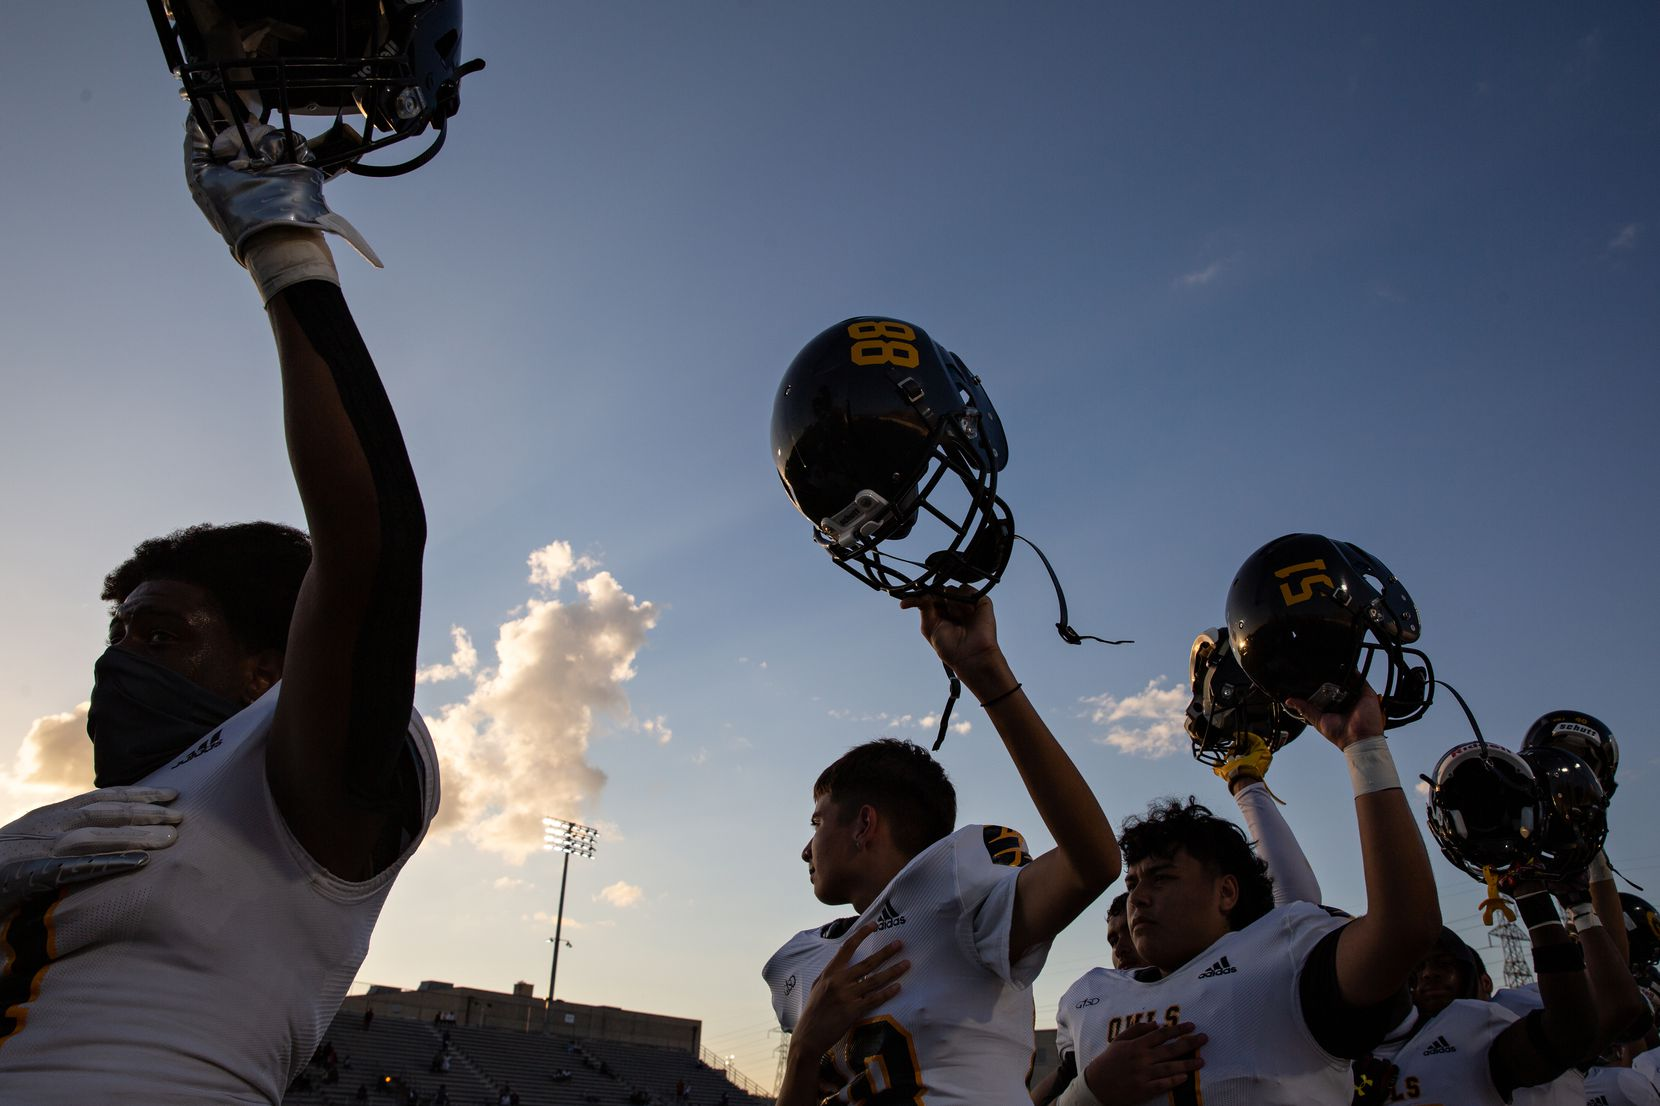 Garland High School football players put their helmets in the air during the Star Spangled Banner before the season-opening game at Sprague stadium against Justin F. Kimball High School on August 27, 2021.  (Shelby Tauber/Special Contributor)